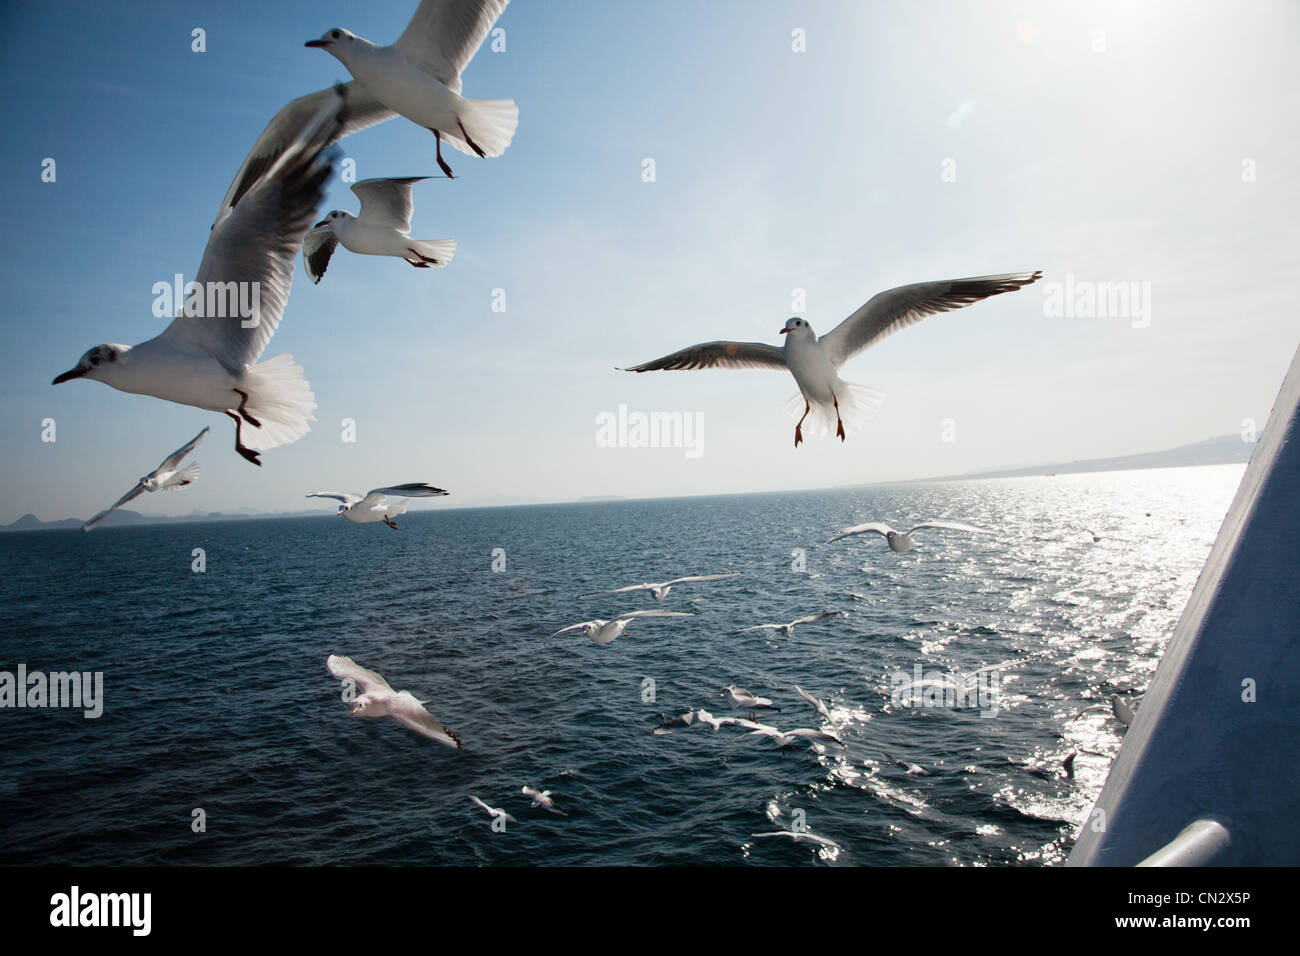 Seagulls flying over sea - Stock Image